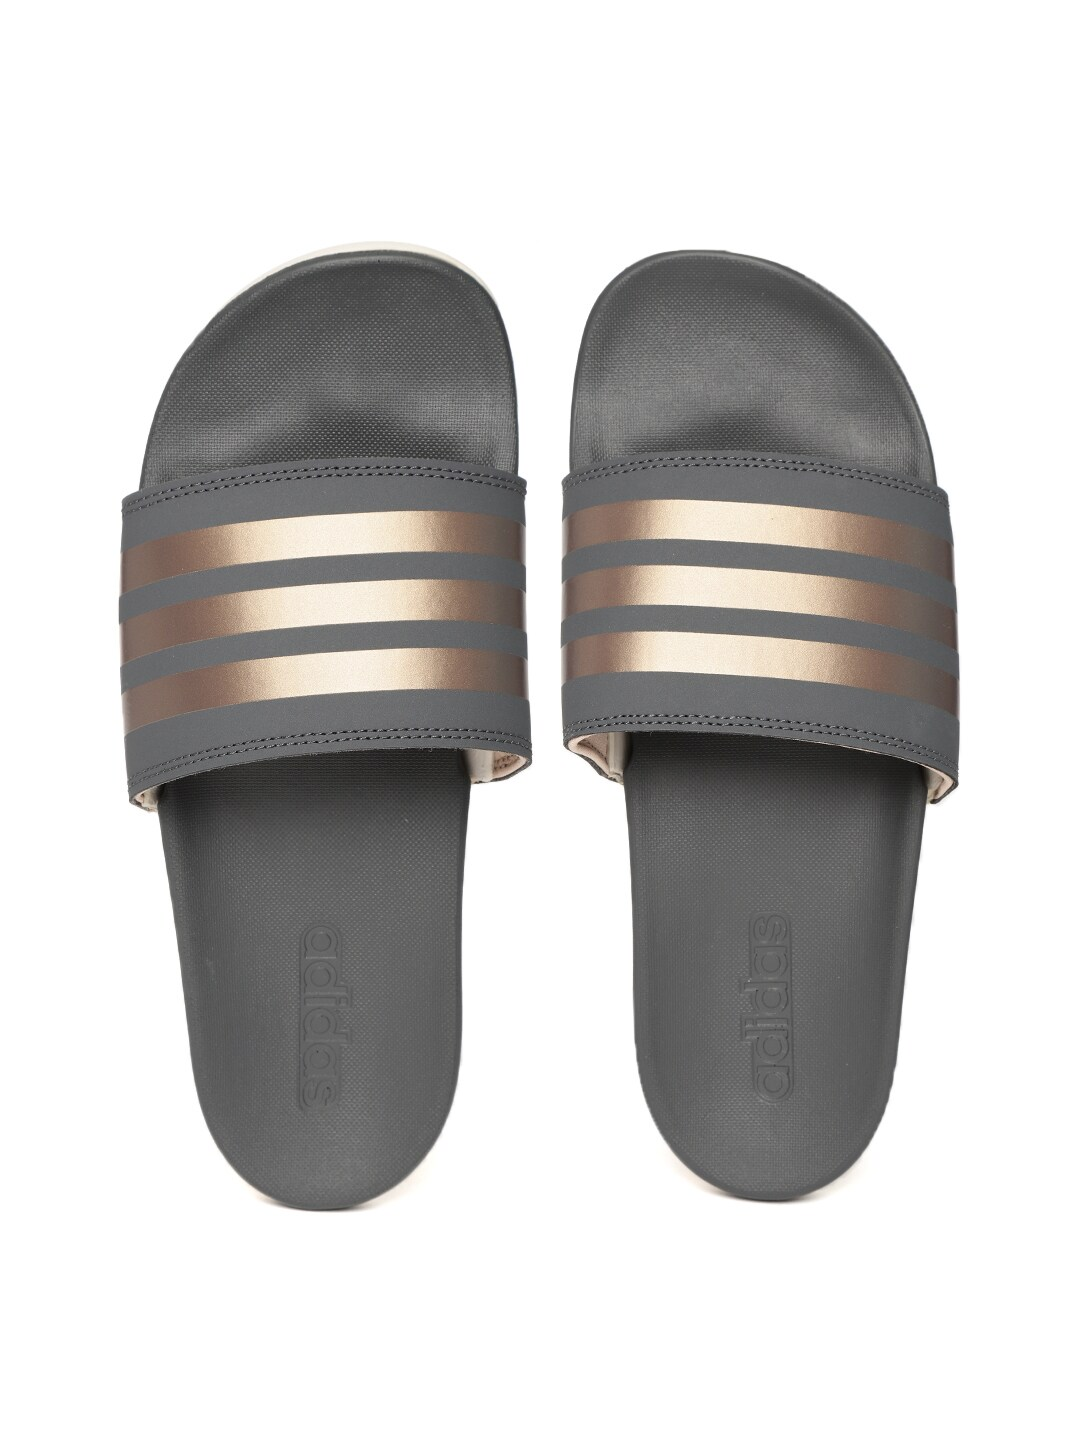 new concept 27bb5 85970 Adidas Slippers - Buy Adidas Slipper   Flip Flops Online India